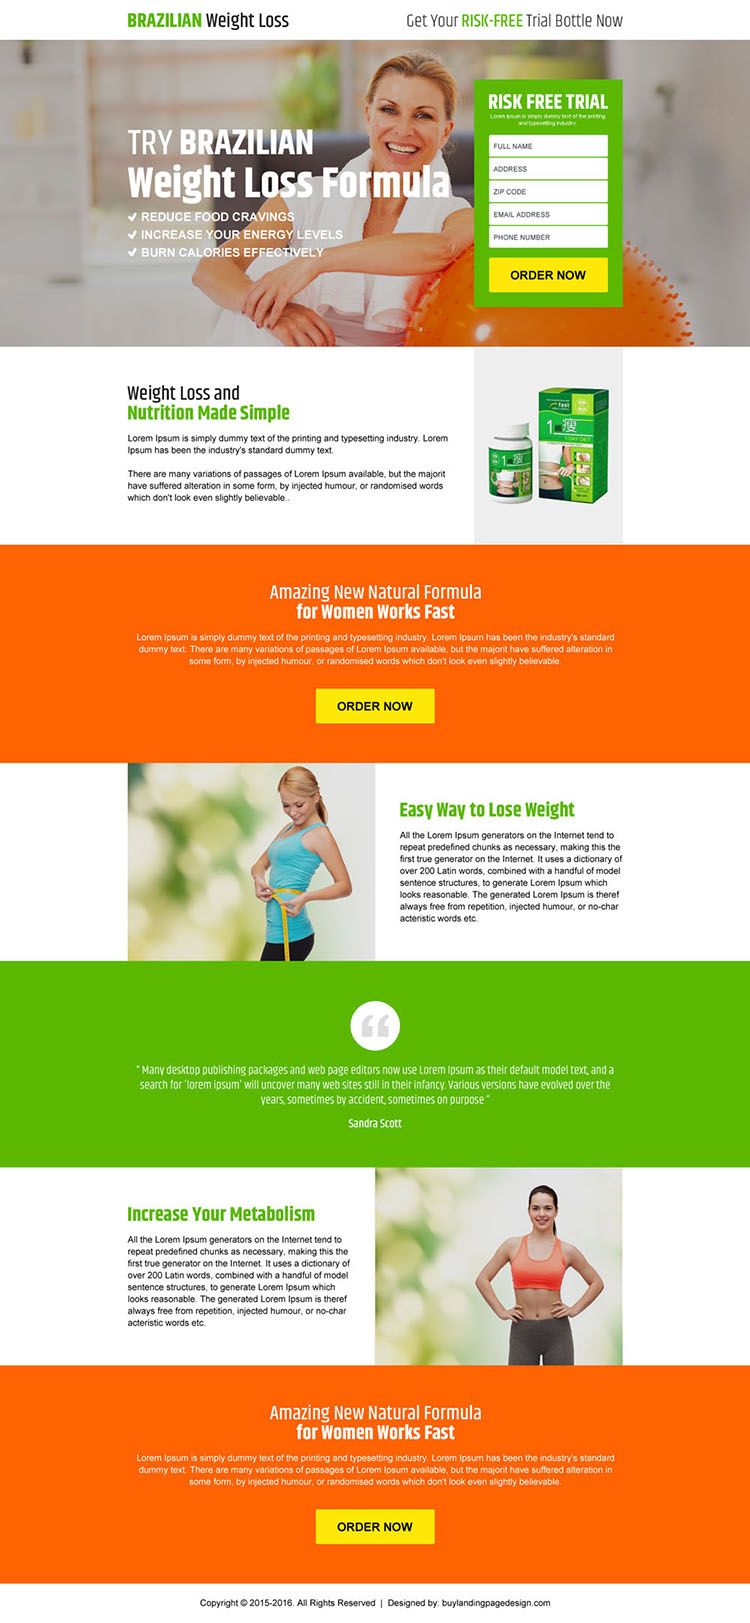 brazilian weight loss risk free product trial responsive landing page design